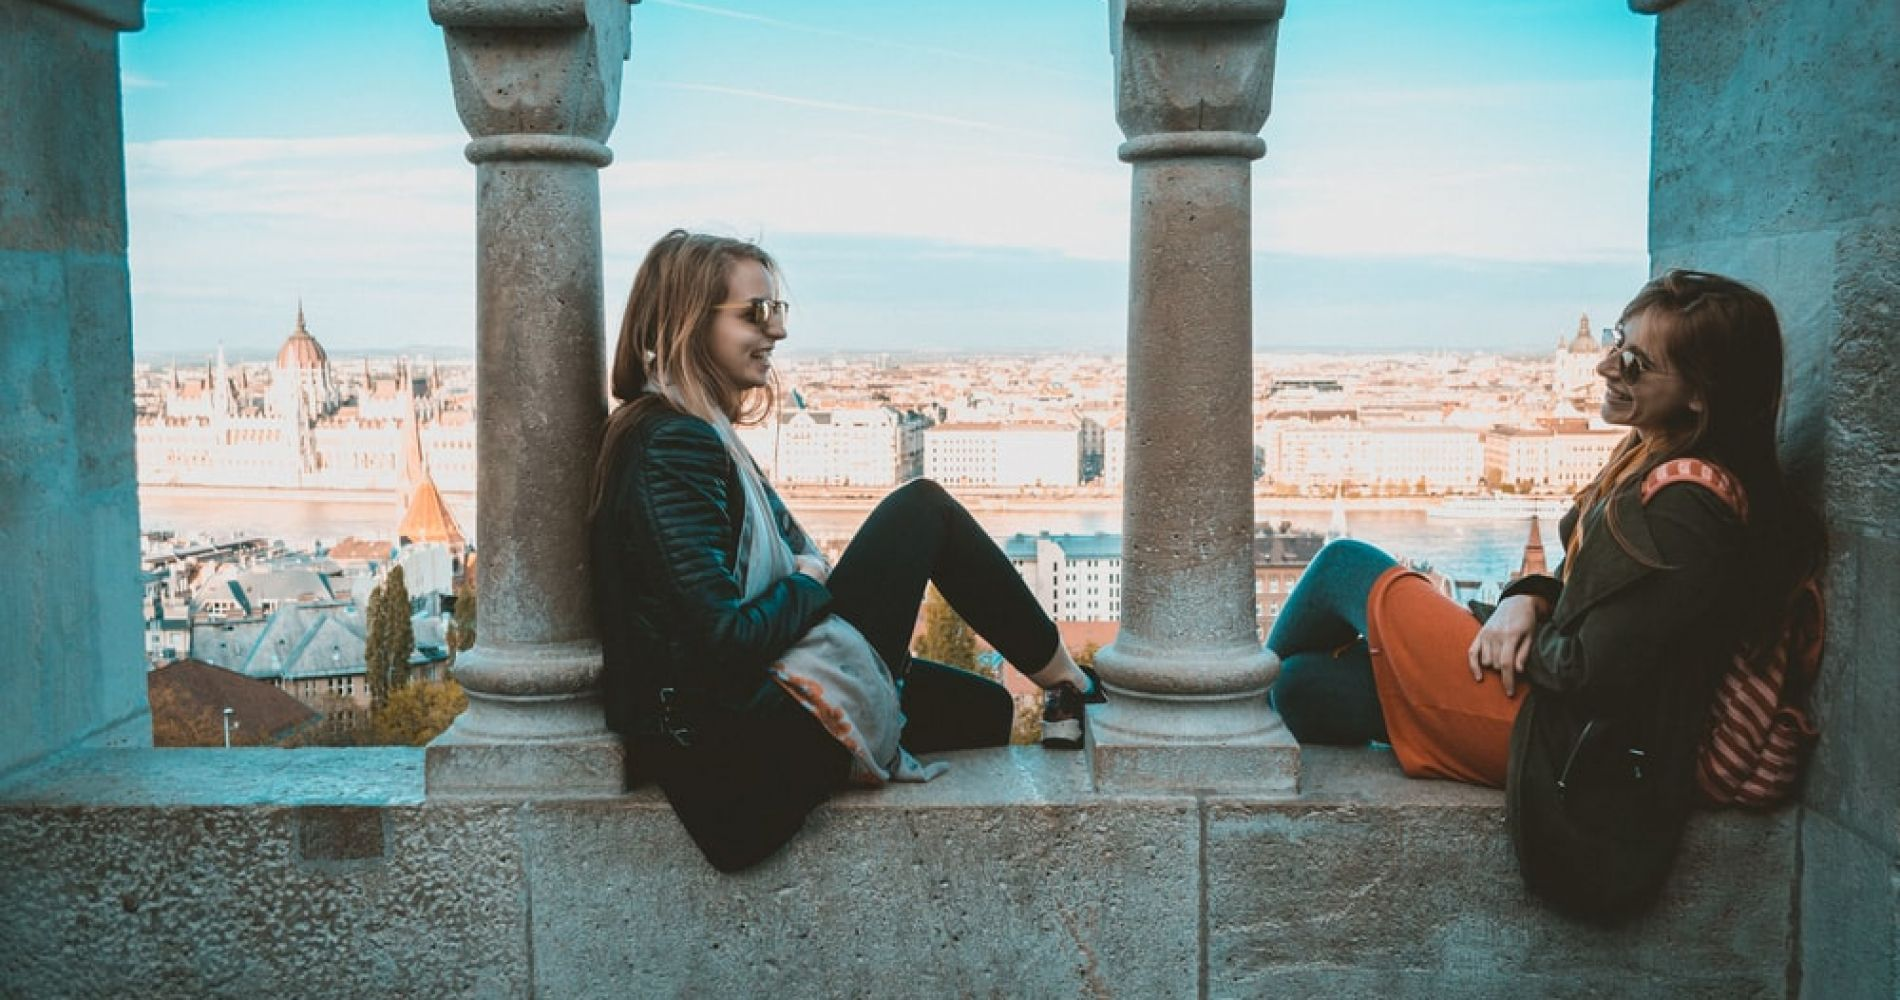 Admire the View of Pest from the Fisherman's Bastion